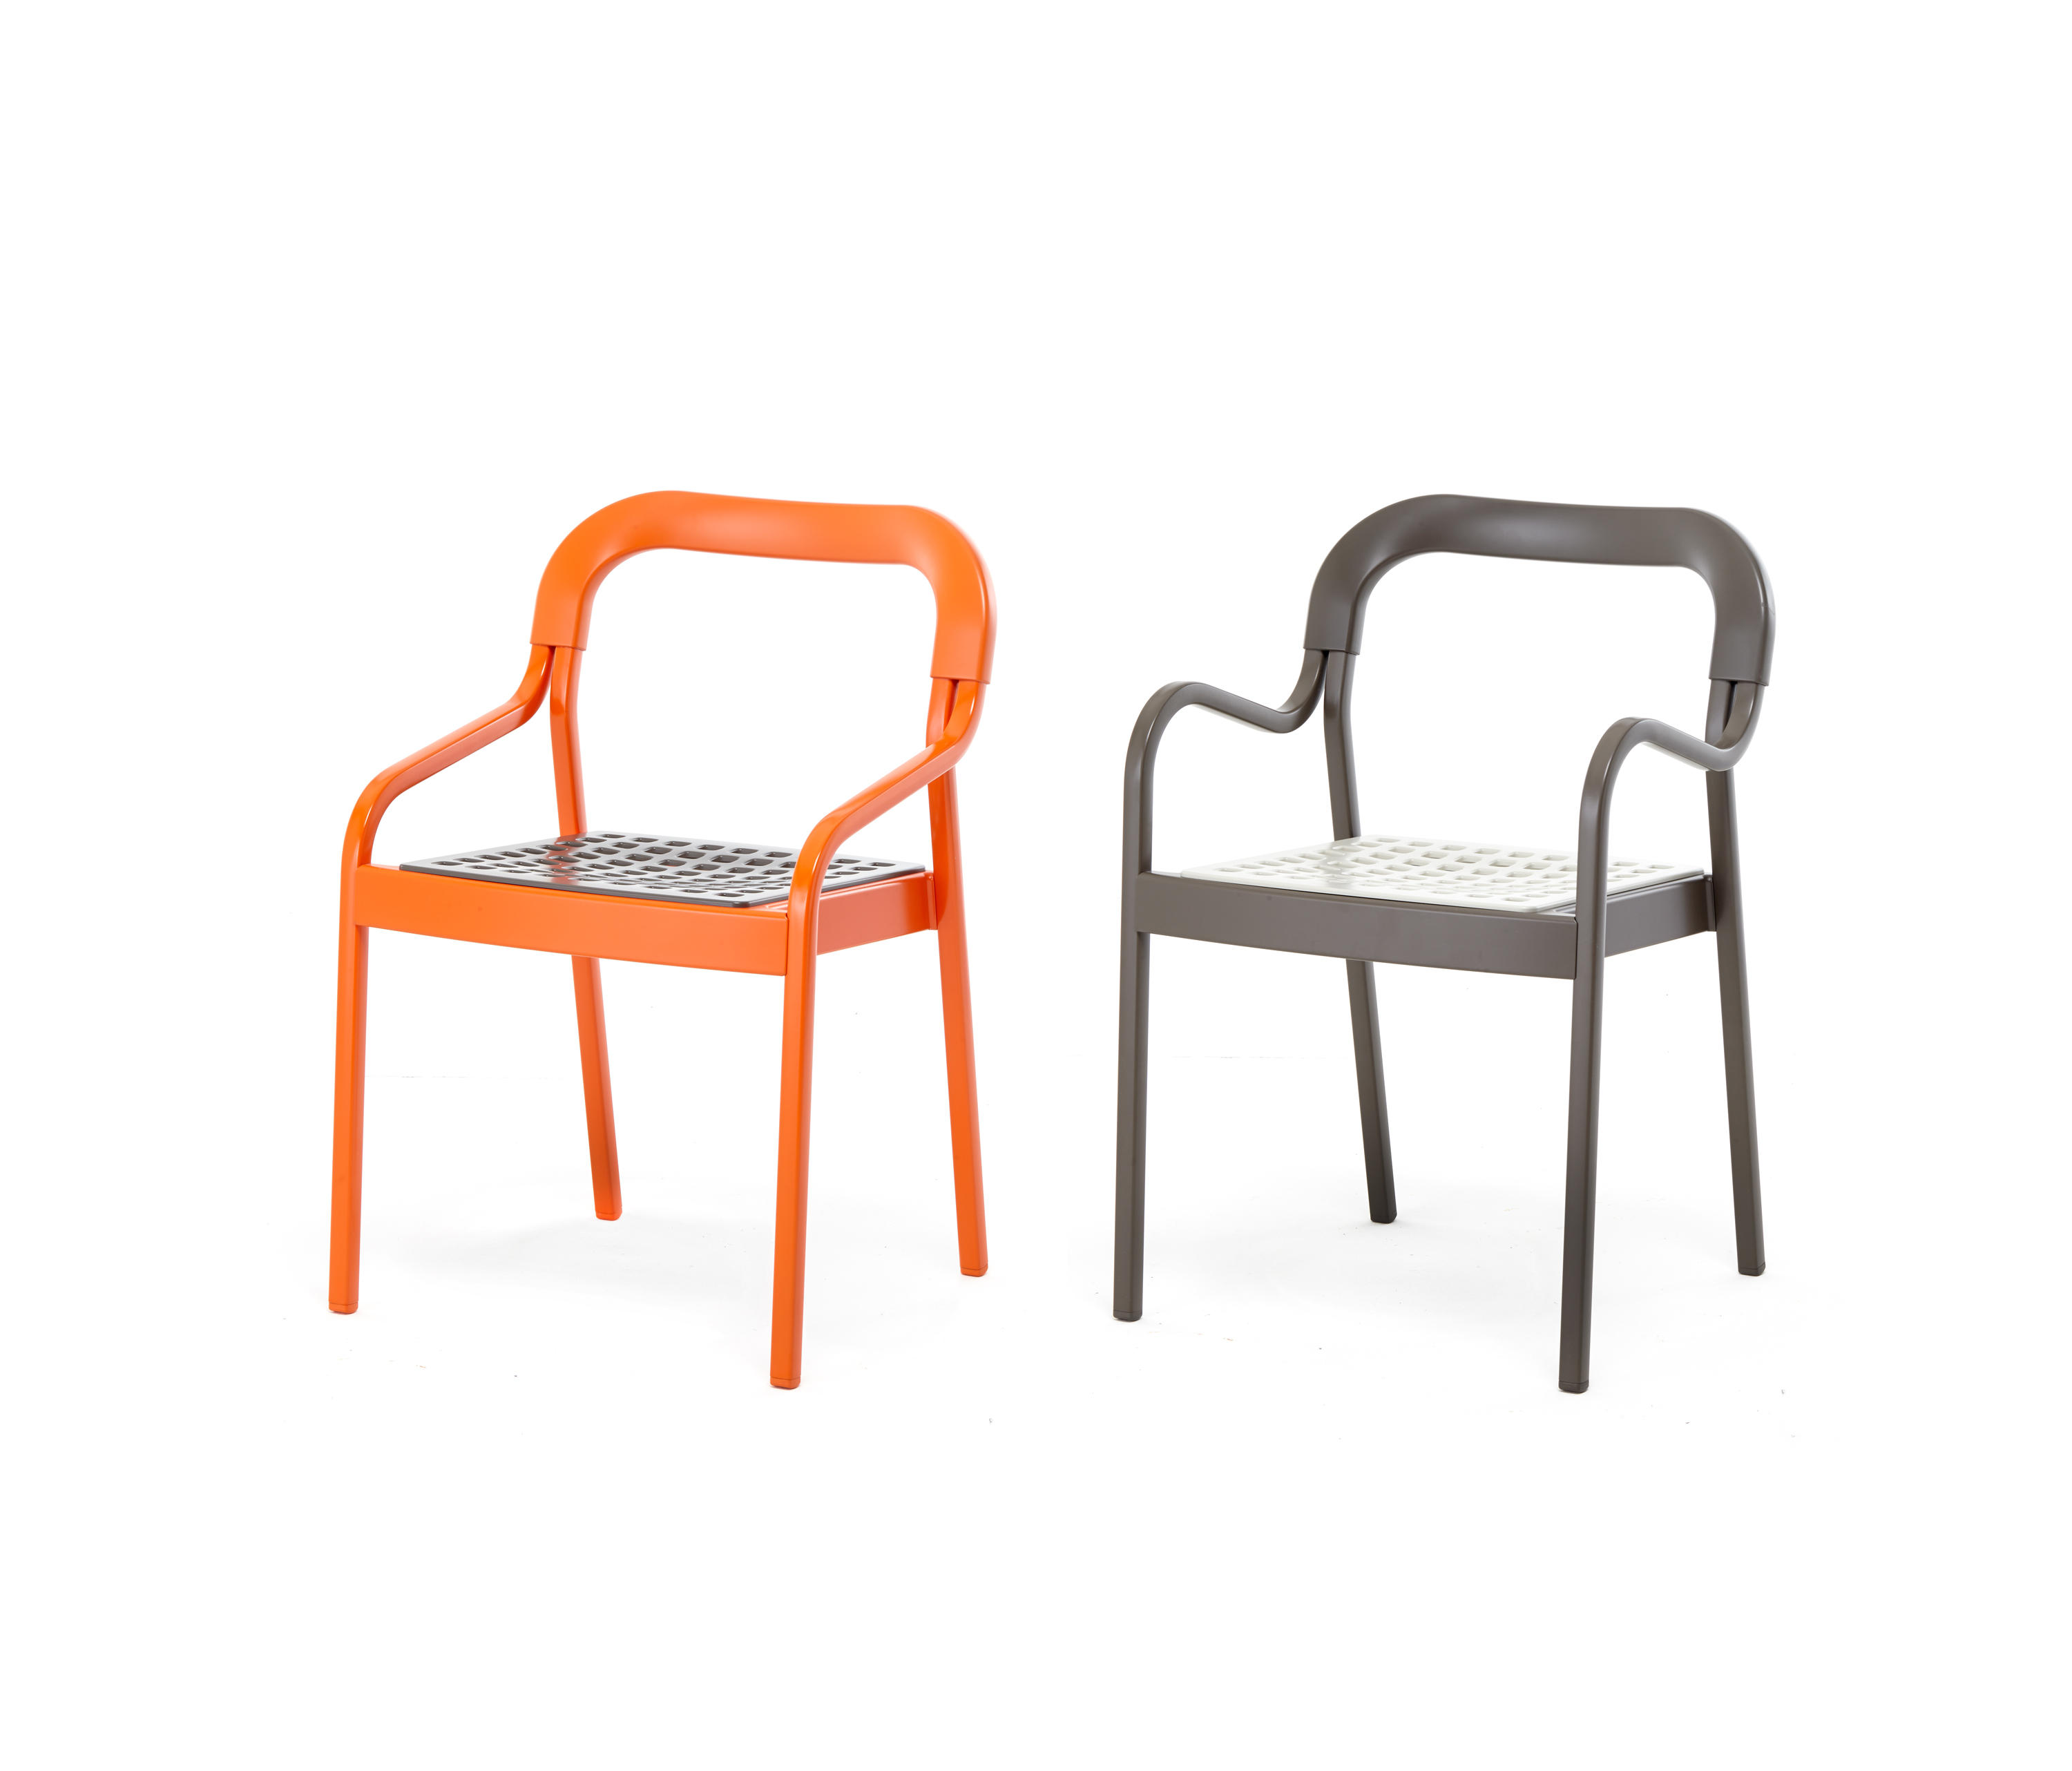 SQUARE - Chairs from TOG  Architonic